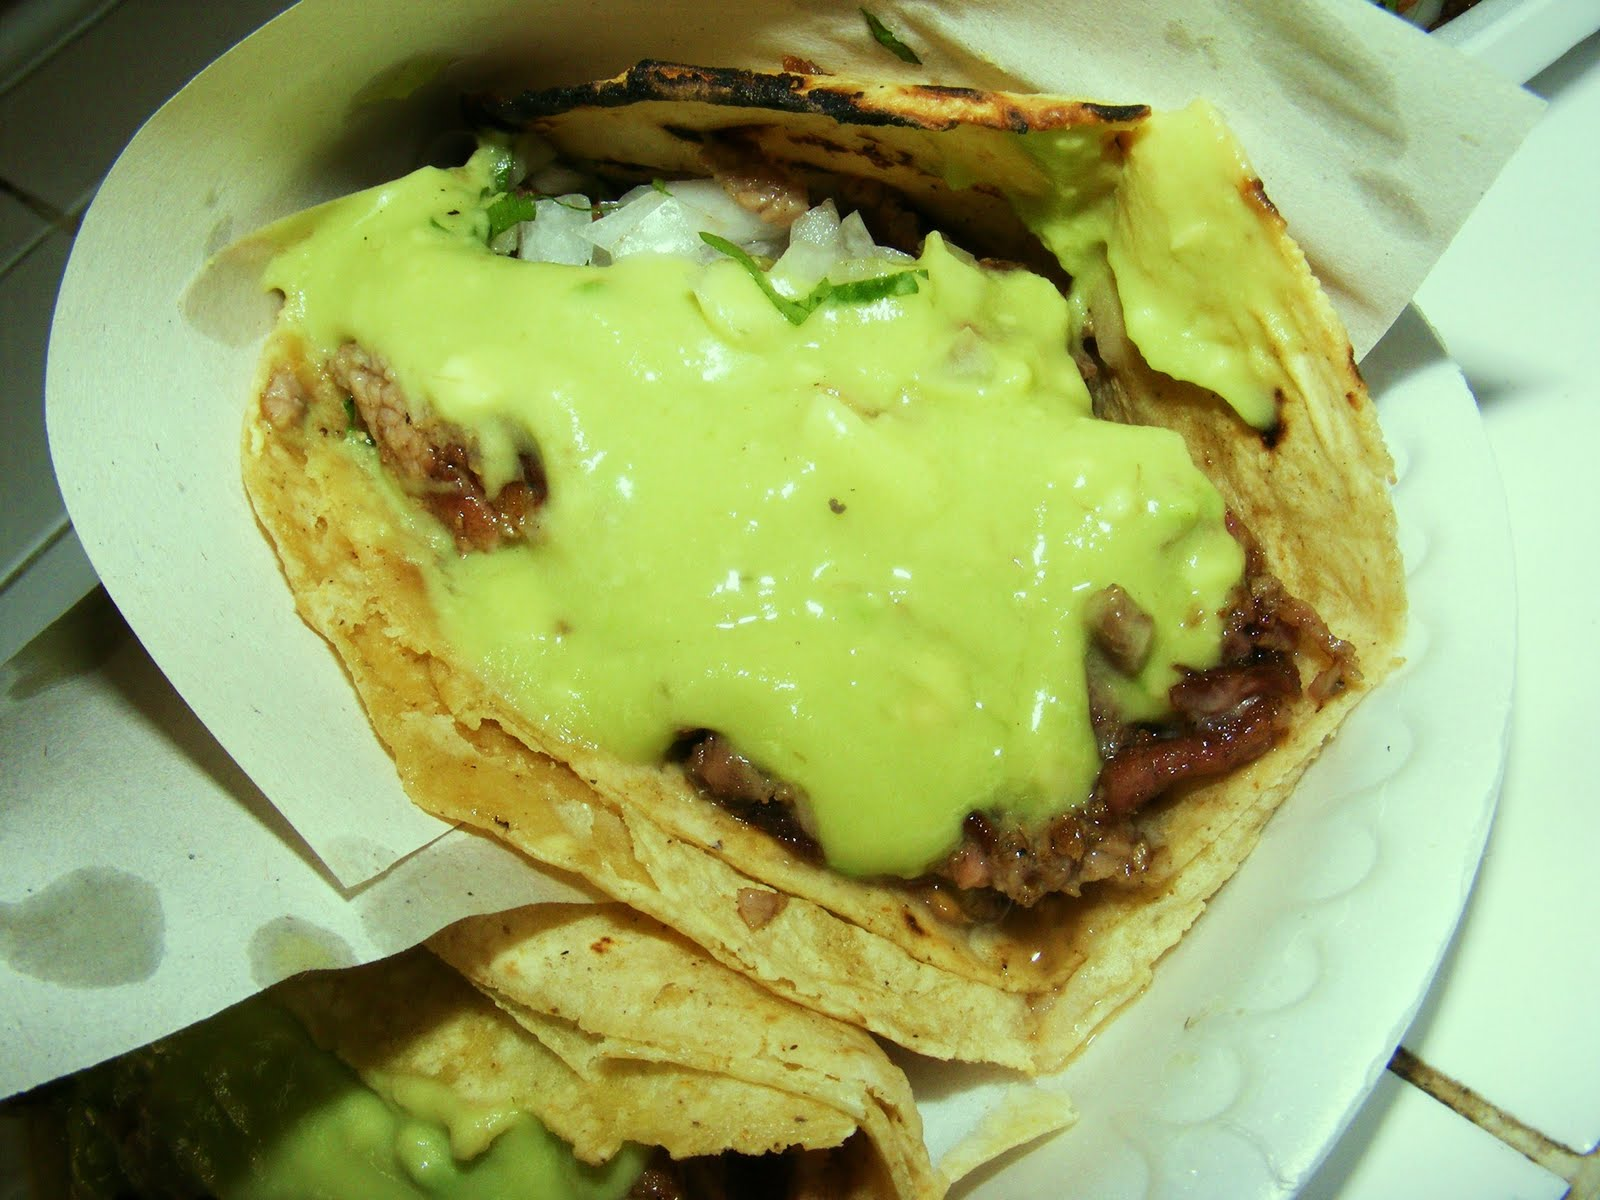 ... Unlawful Carne asada Knowledge-Mexicali Taco & Co. Takes Los Angeles